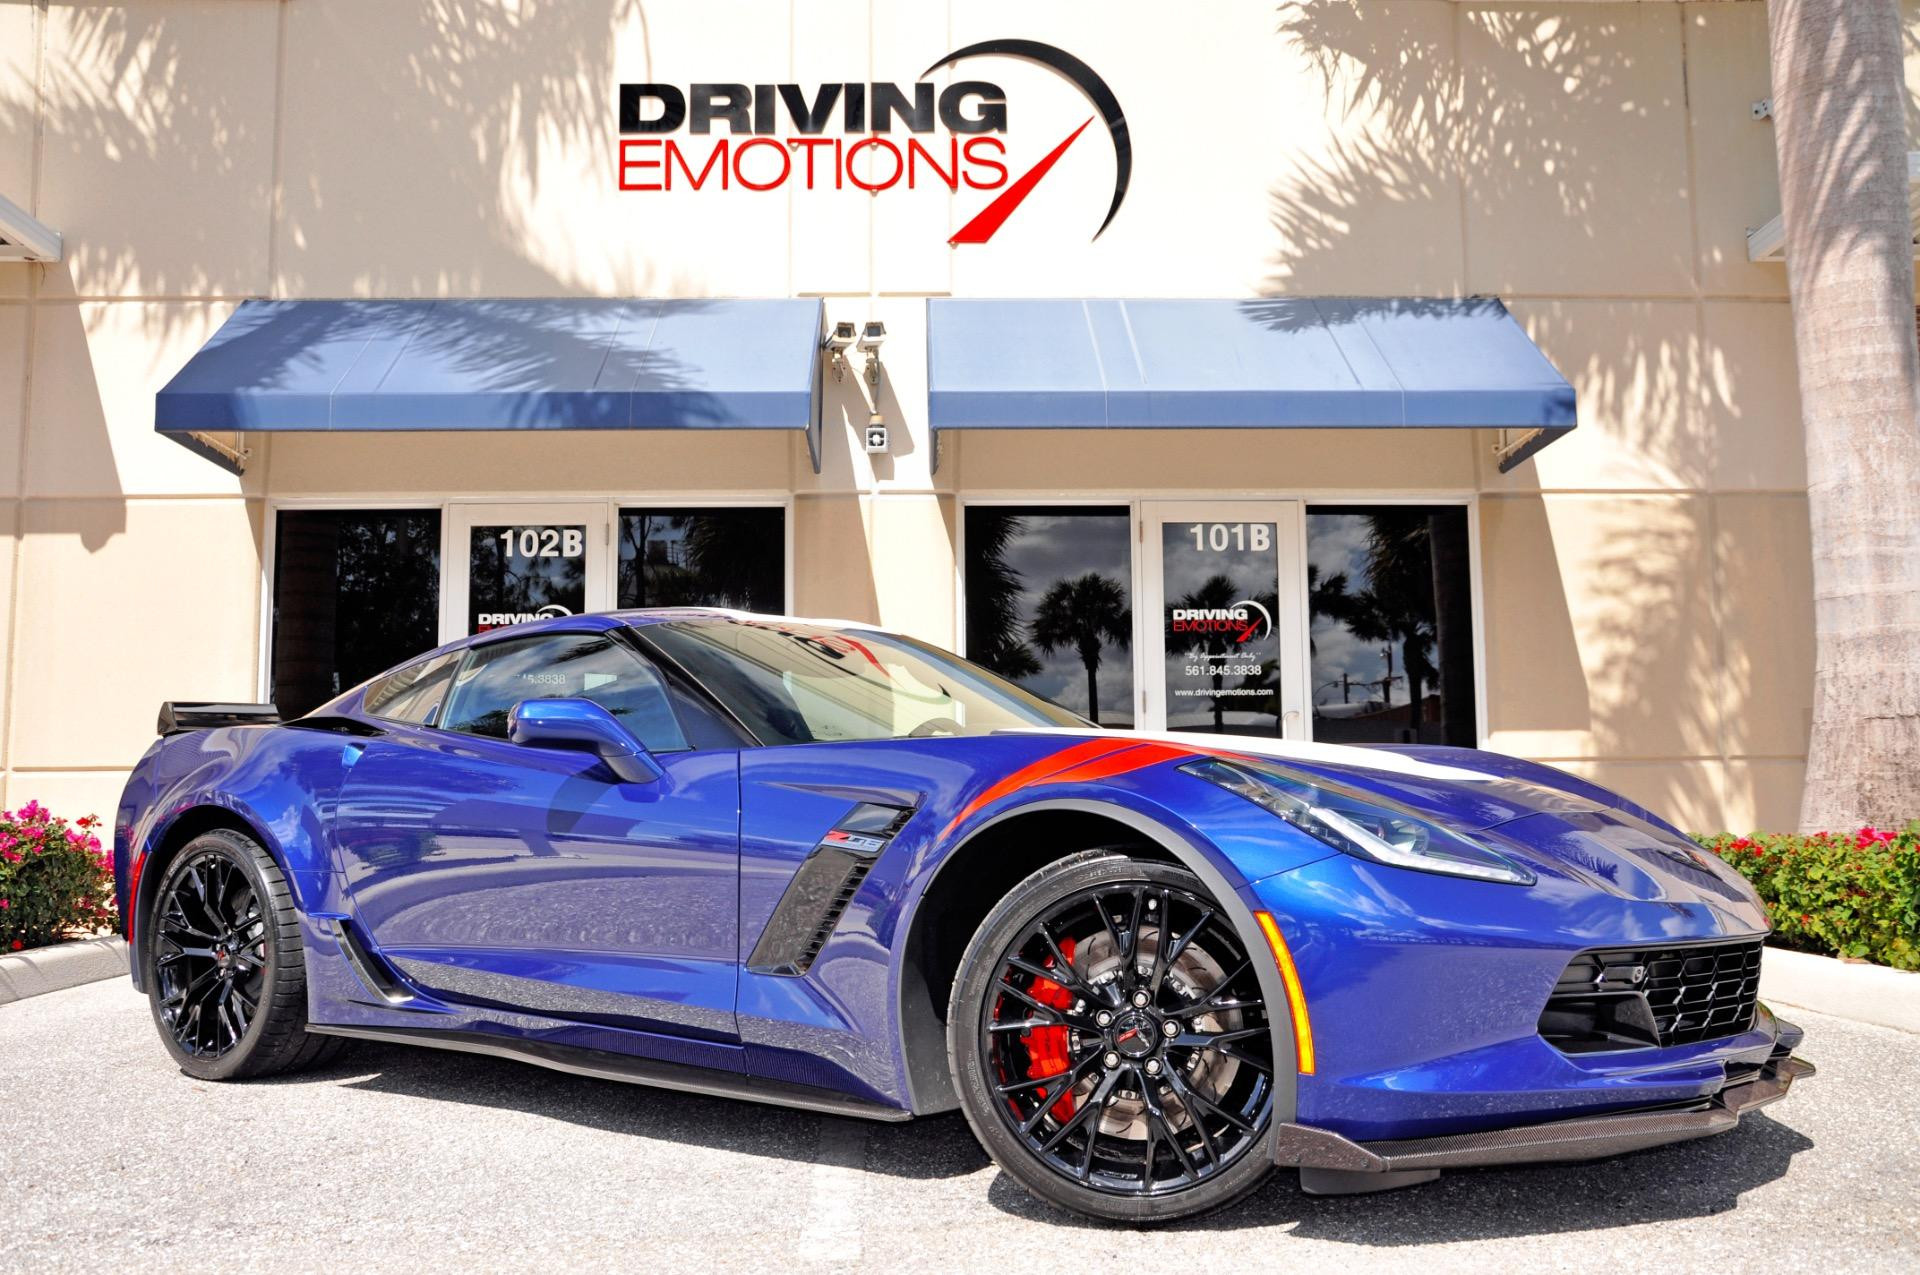 Z06 For Sale >> 2016 Chevrolet Corvette Z06 Coupe Z06 2lz Coupe Stock 5939 For